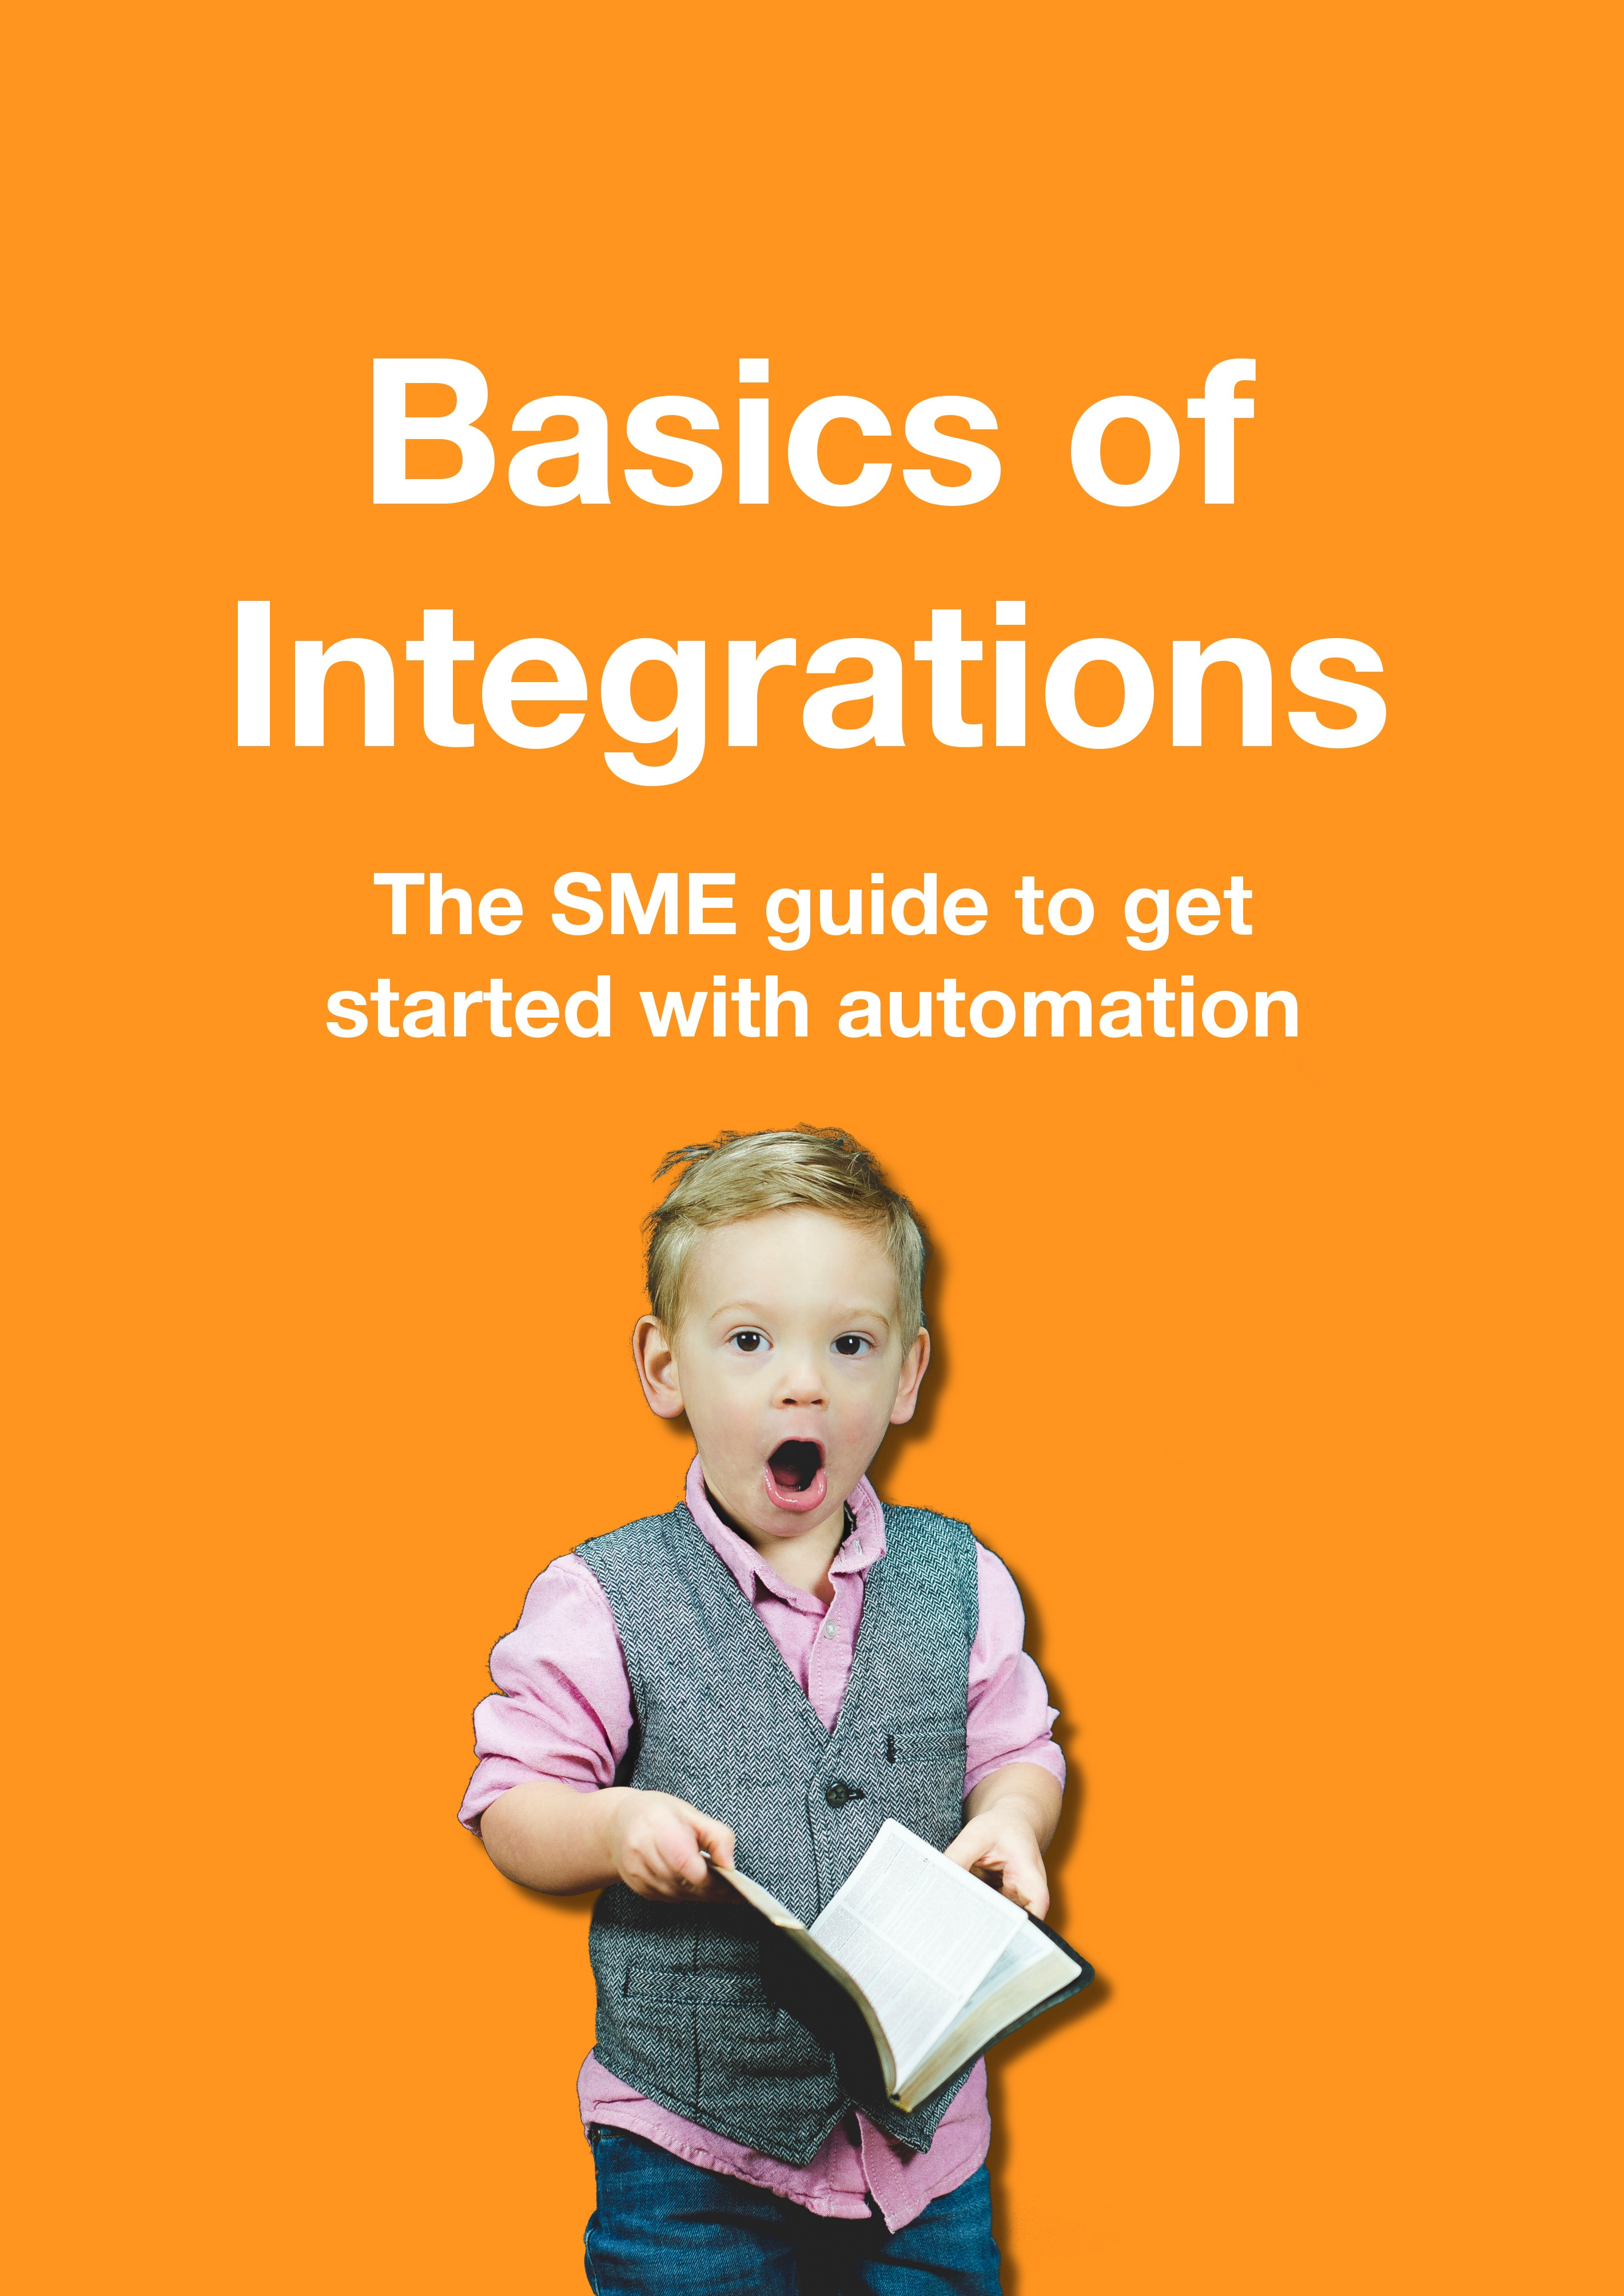 Basics of integrations - The SME guide to get started with automation